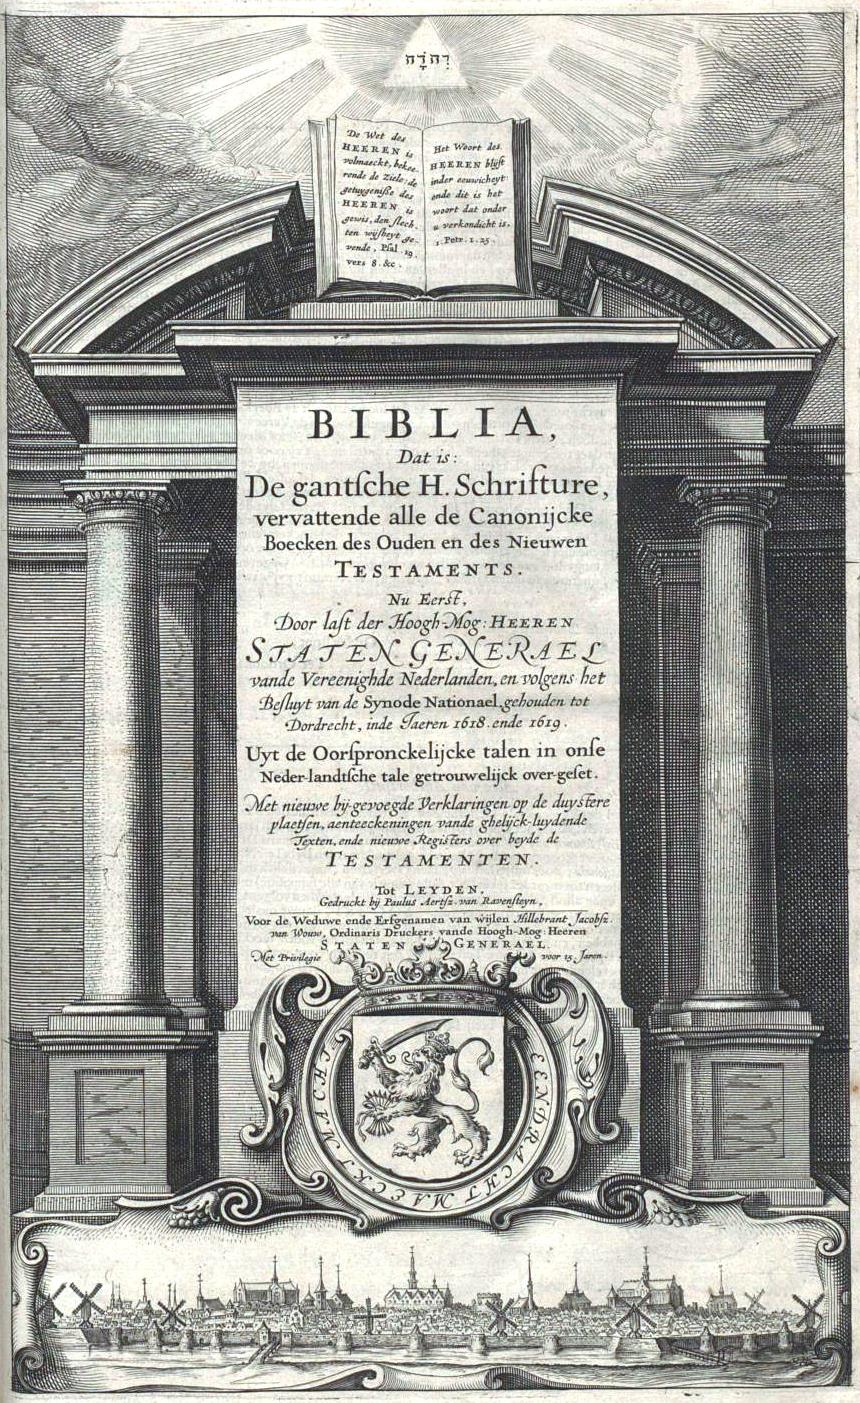 Statenvertaling title page